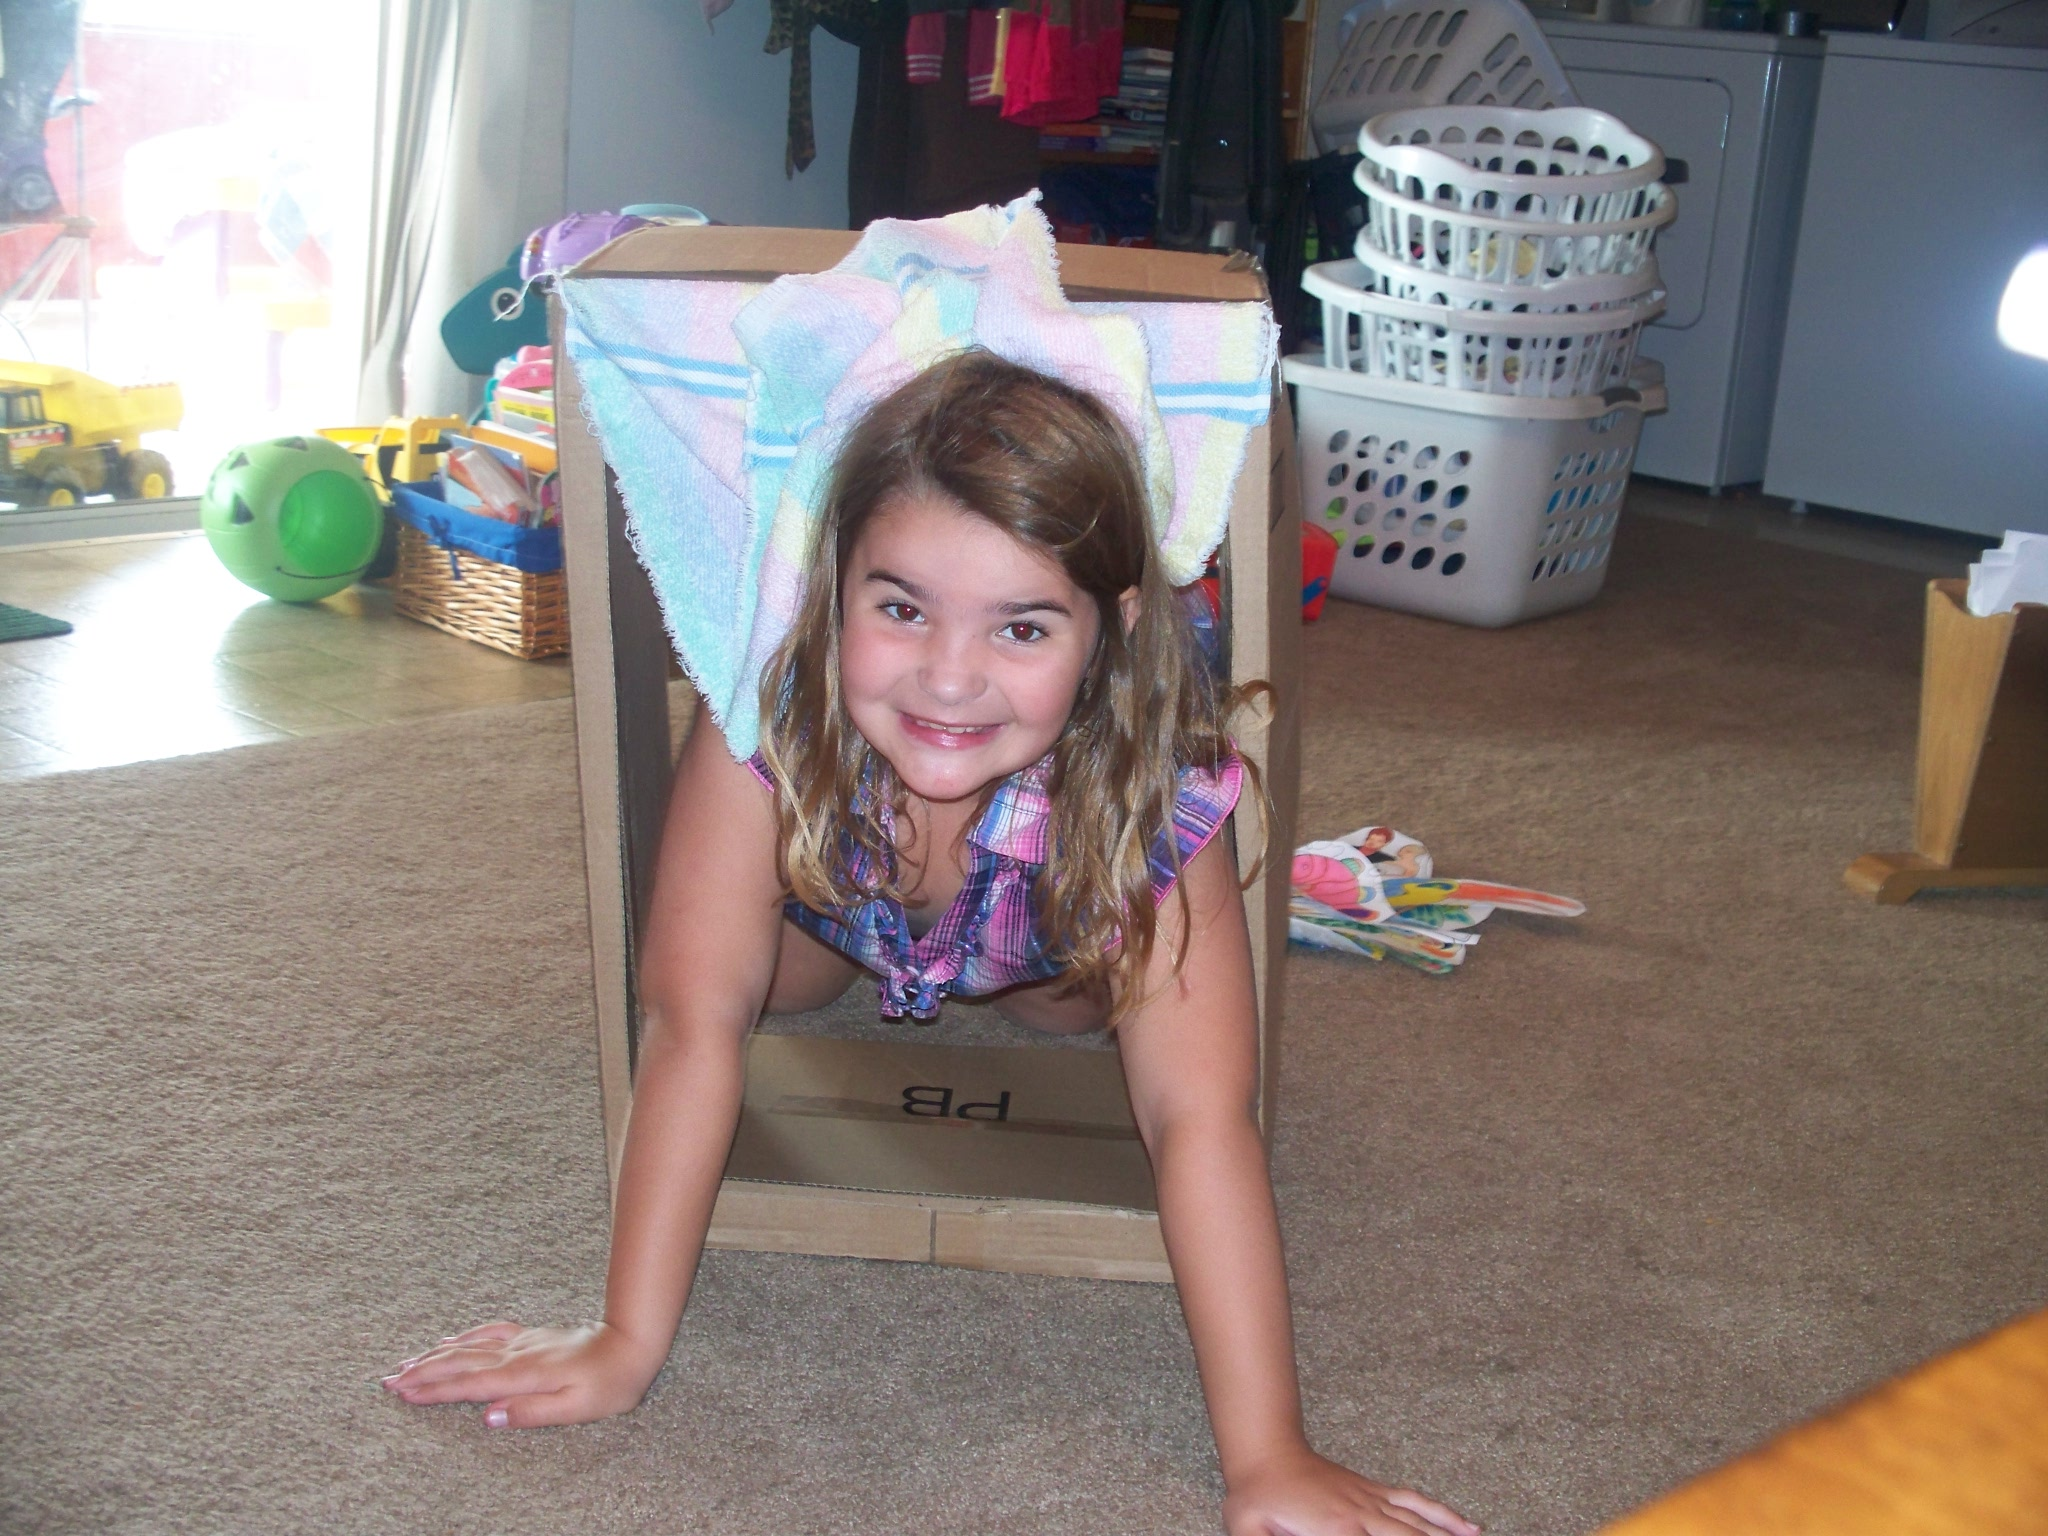 Family Fun Friday: Puppet Show Theater in Quick Takes